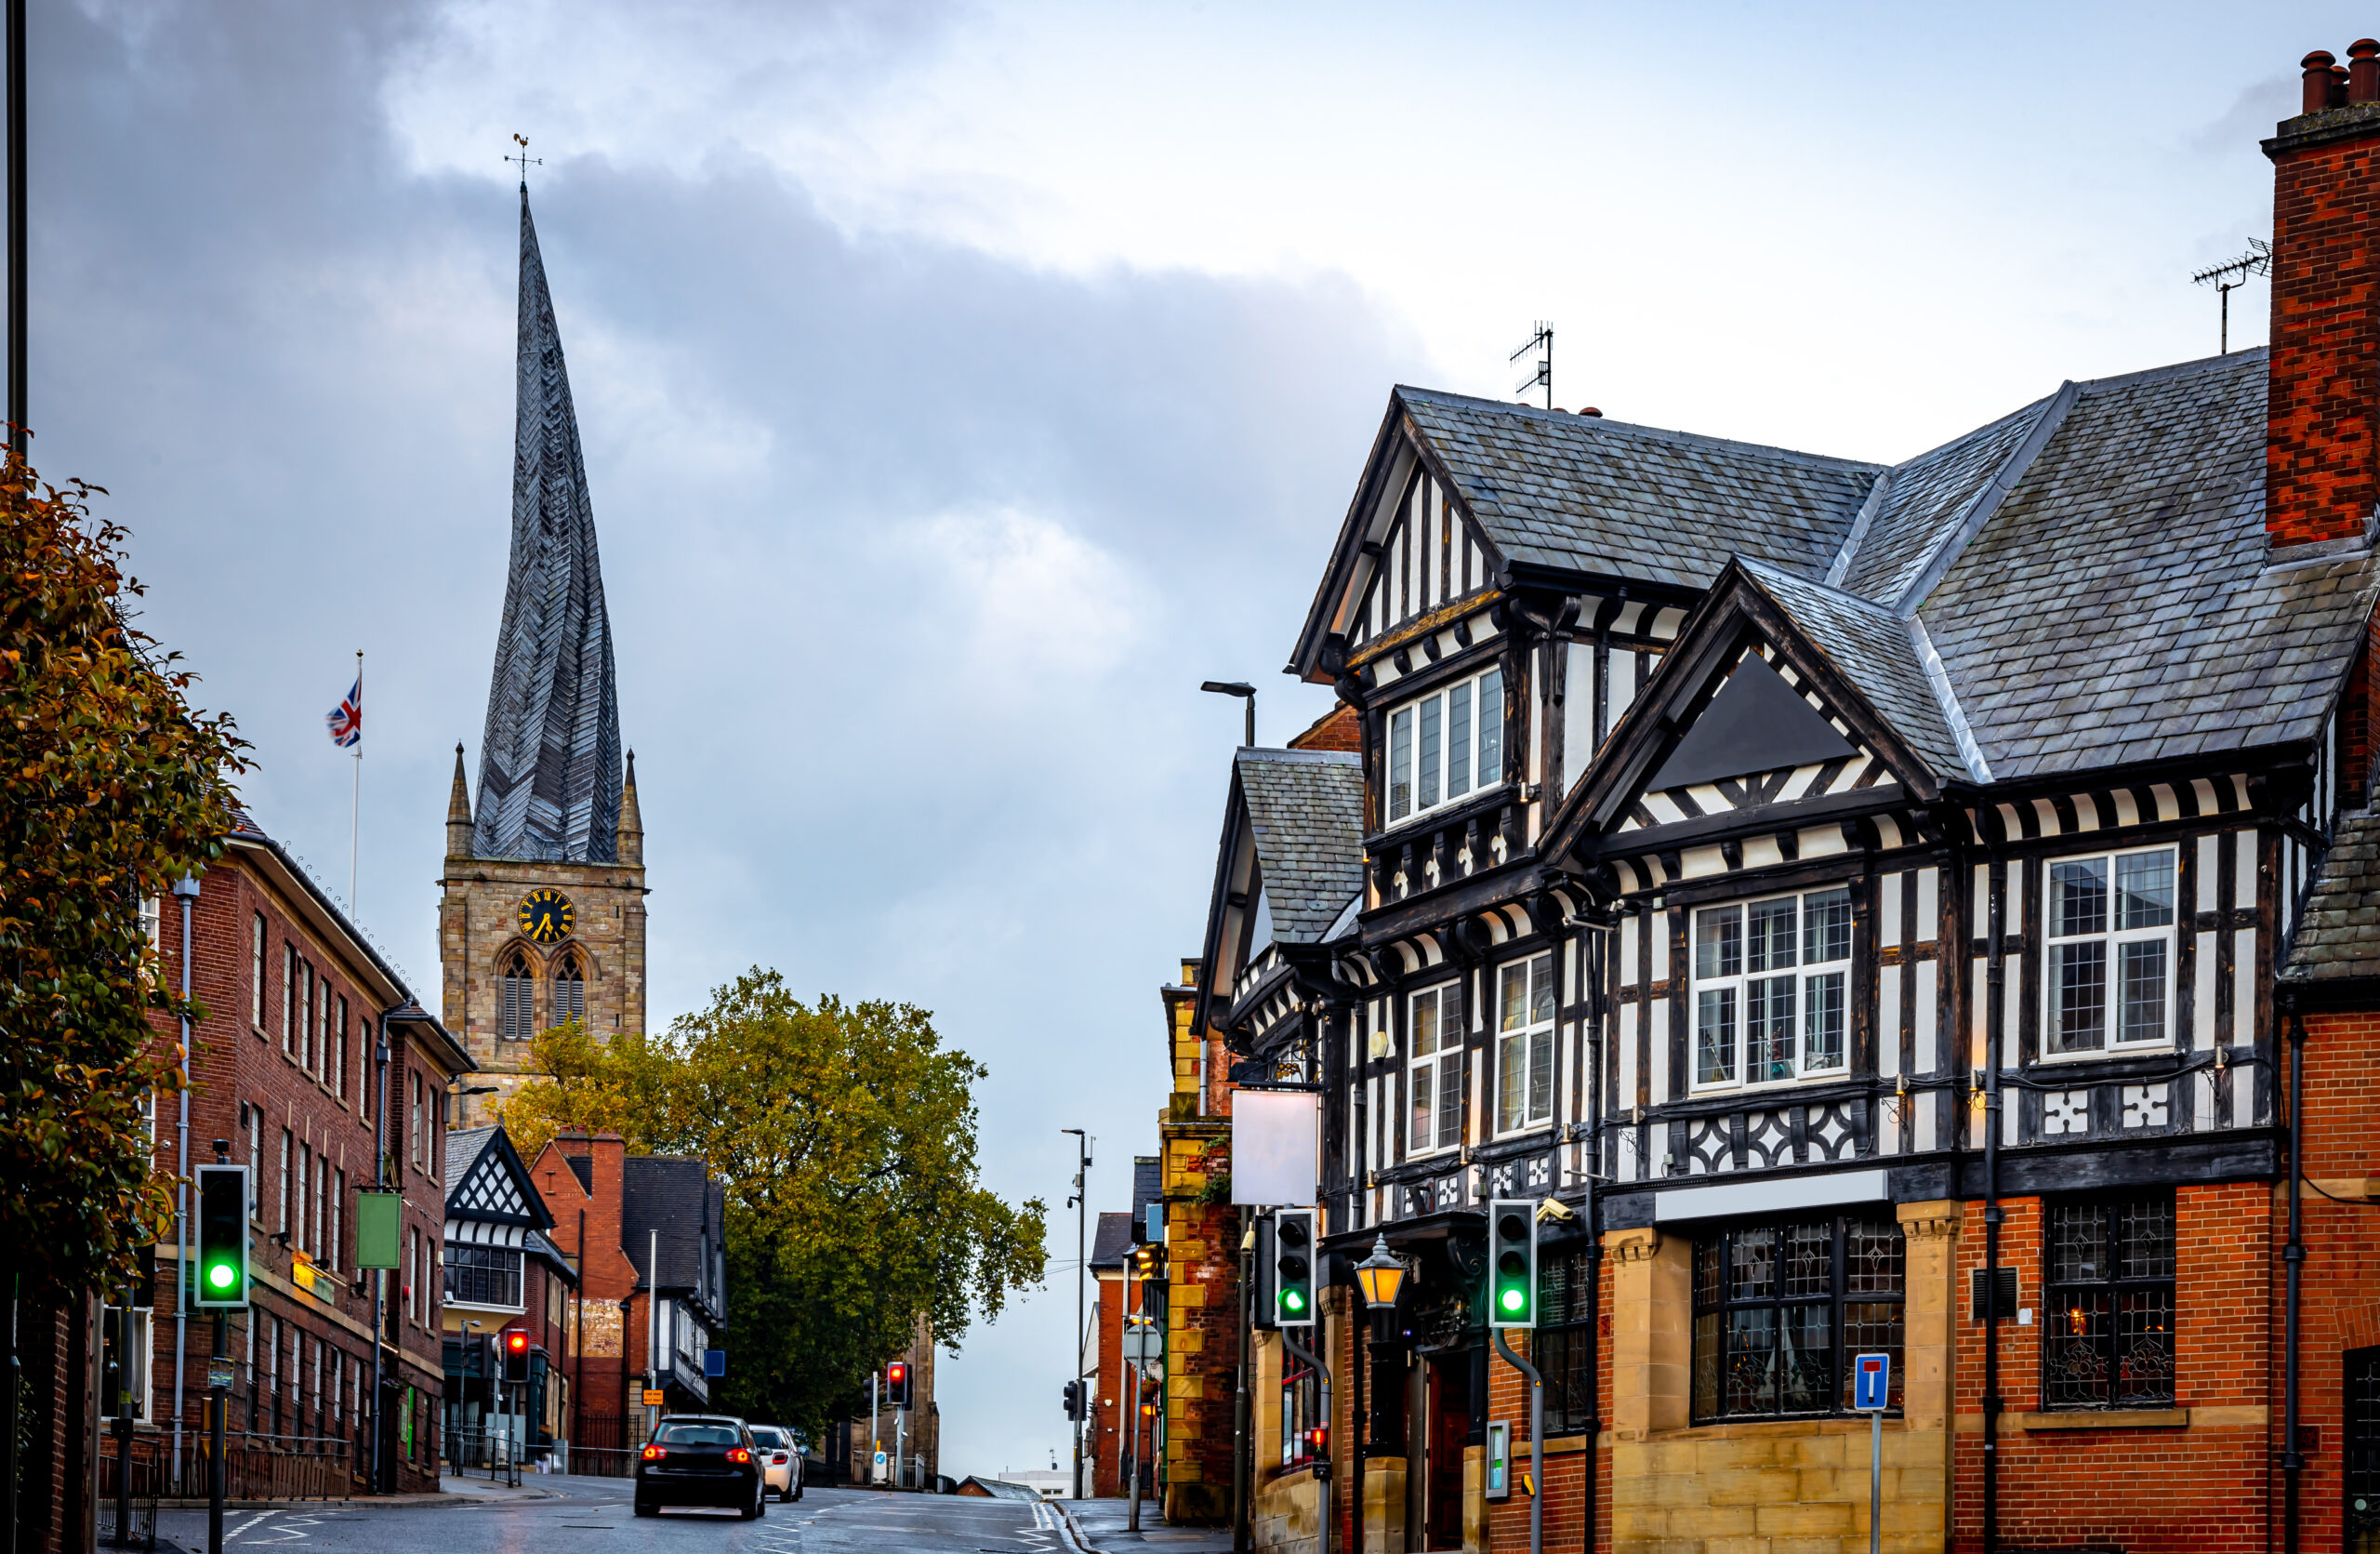 The Affordable Areas to buy a Home in Chesterfield